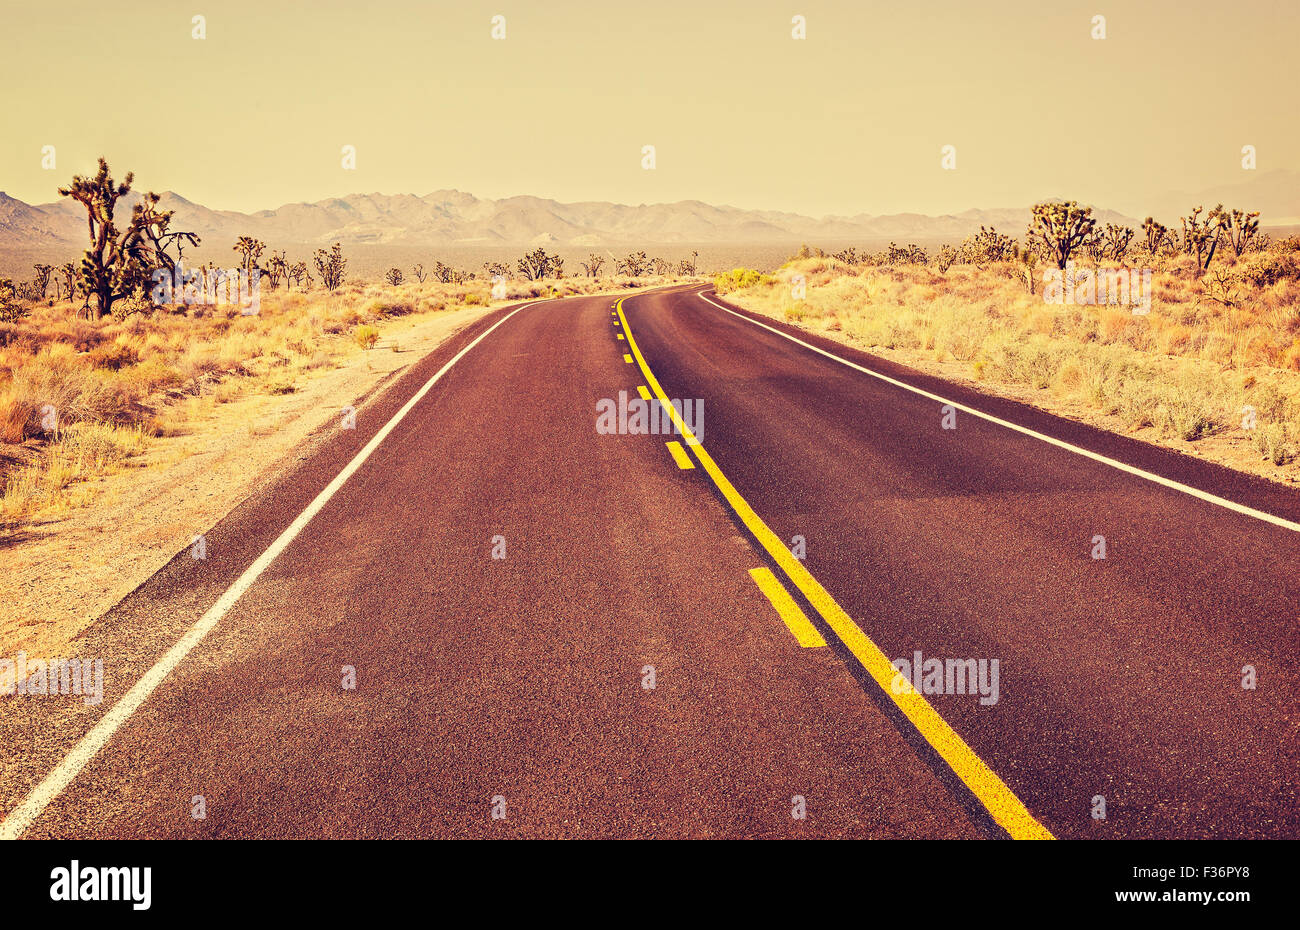 Retro old film style endless country highway, travel adventure concept, Joshua Tree National Park, USA. - Stock Image